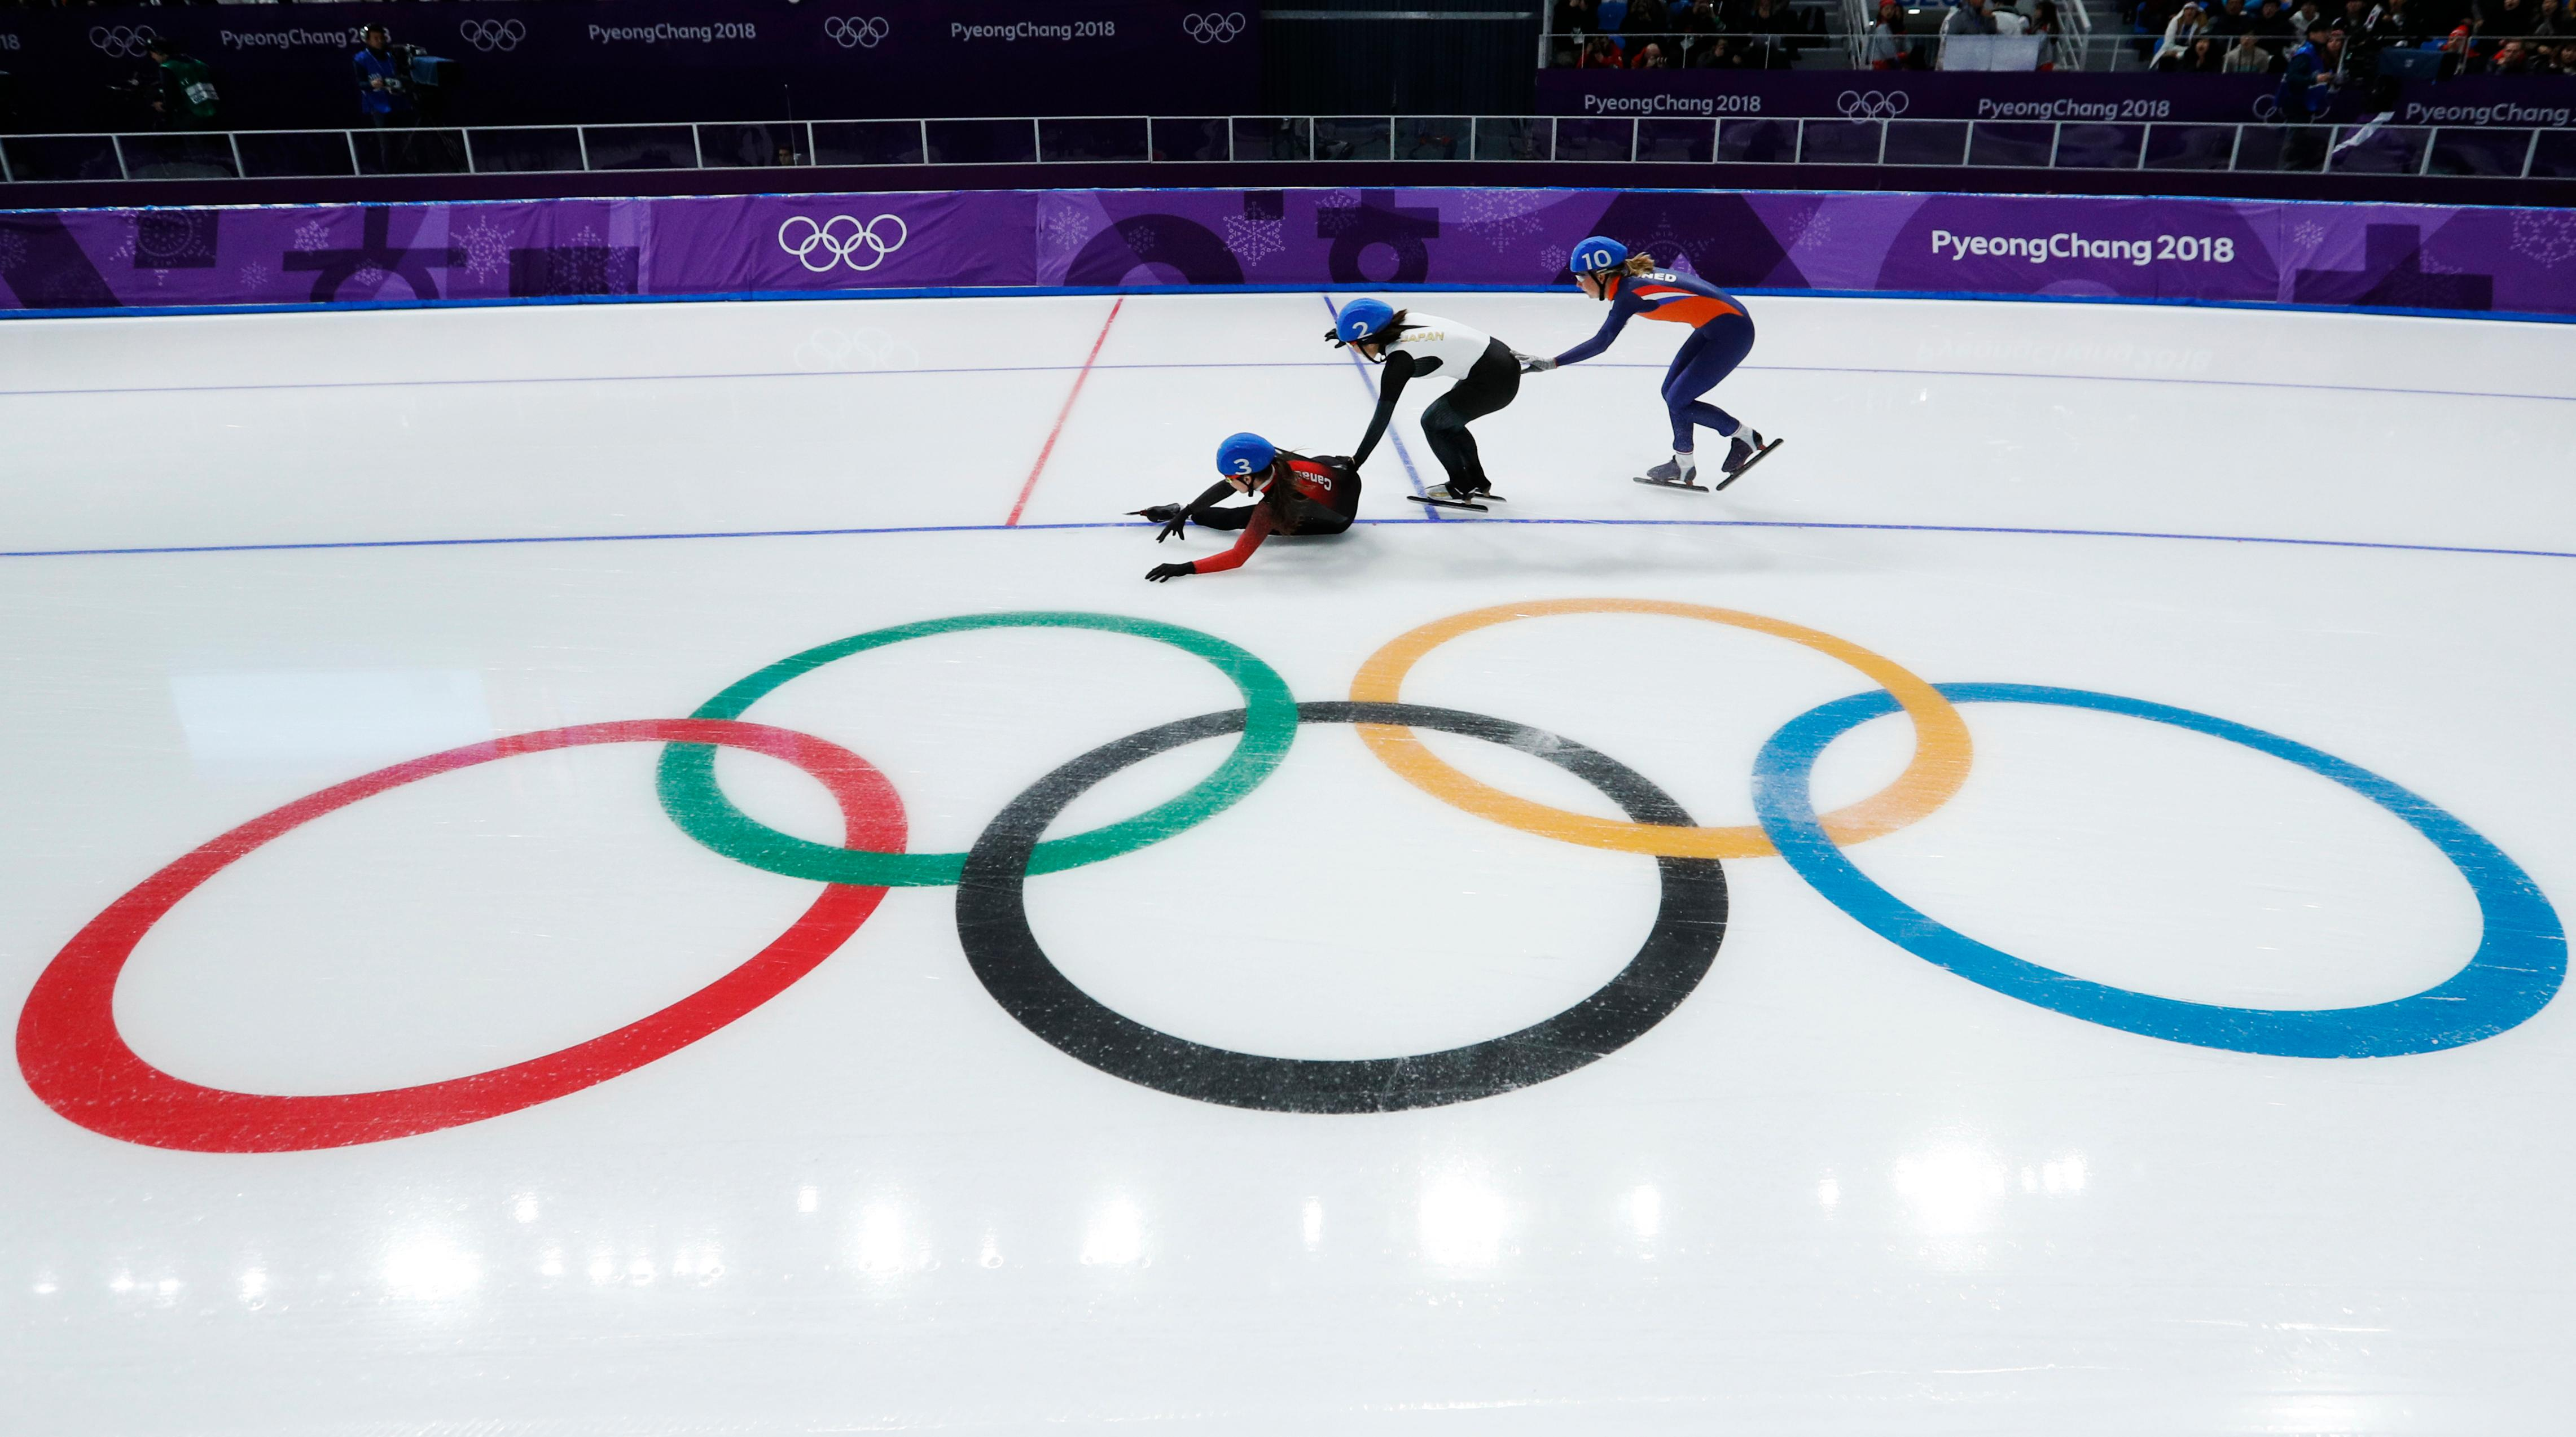 Ivanie Blondin of Canada, Ayano Sato of Japan, and Annouk van der Weijden of The Netherlands, from left to right, crash during the women's mass start semifinal speedskating race at the Gangneung Oval at the 2018 Winter Olympics in Gangneung, South Korea, Saturday, Feb. 24, 2018. (AP Photo/John Locher)